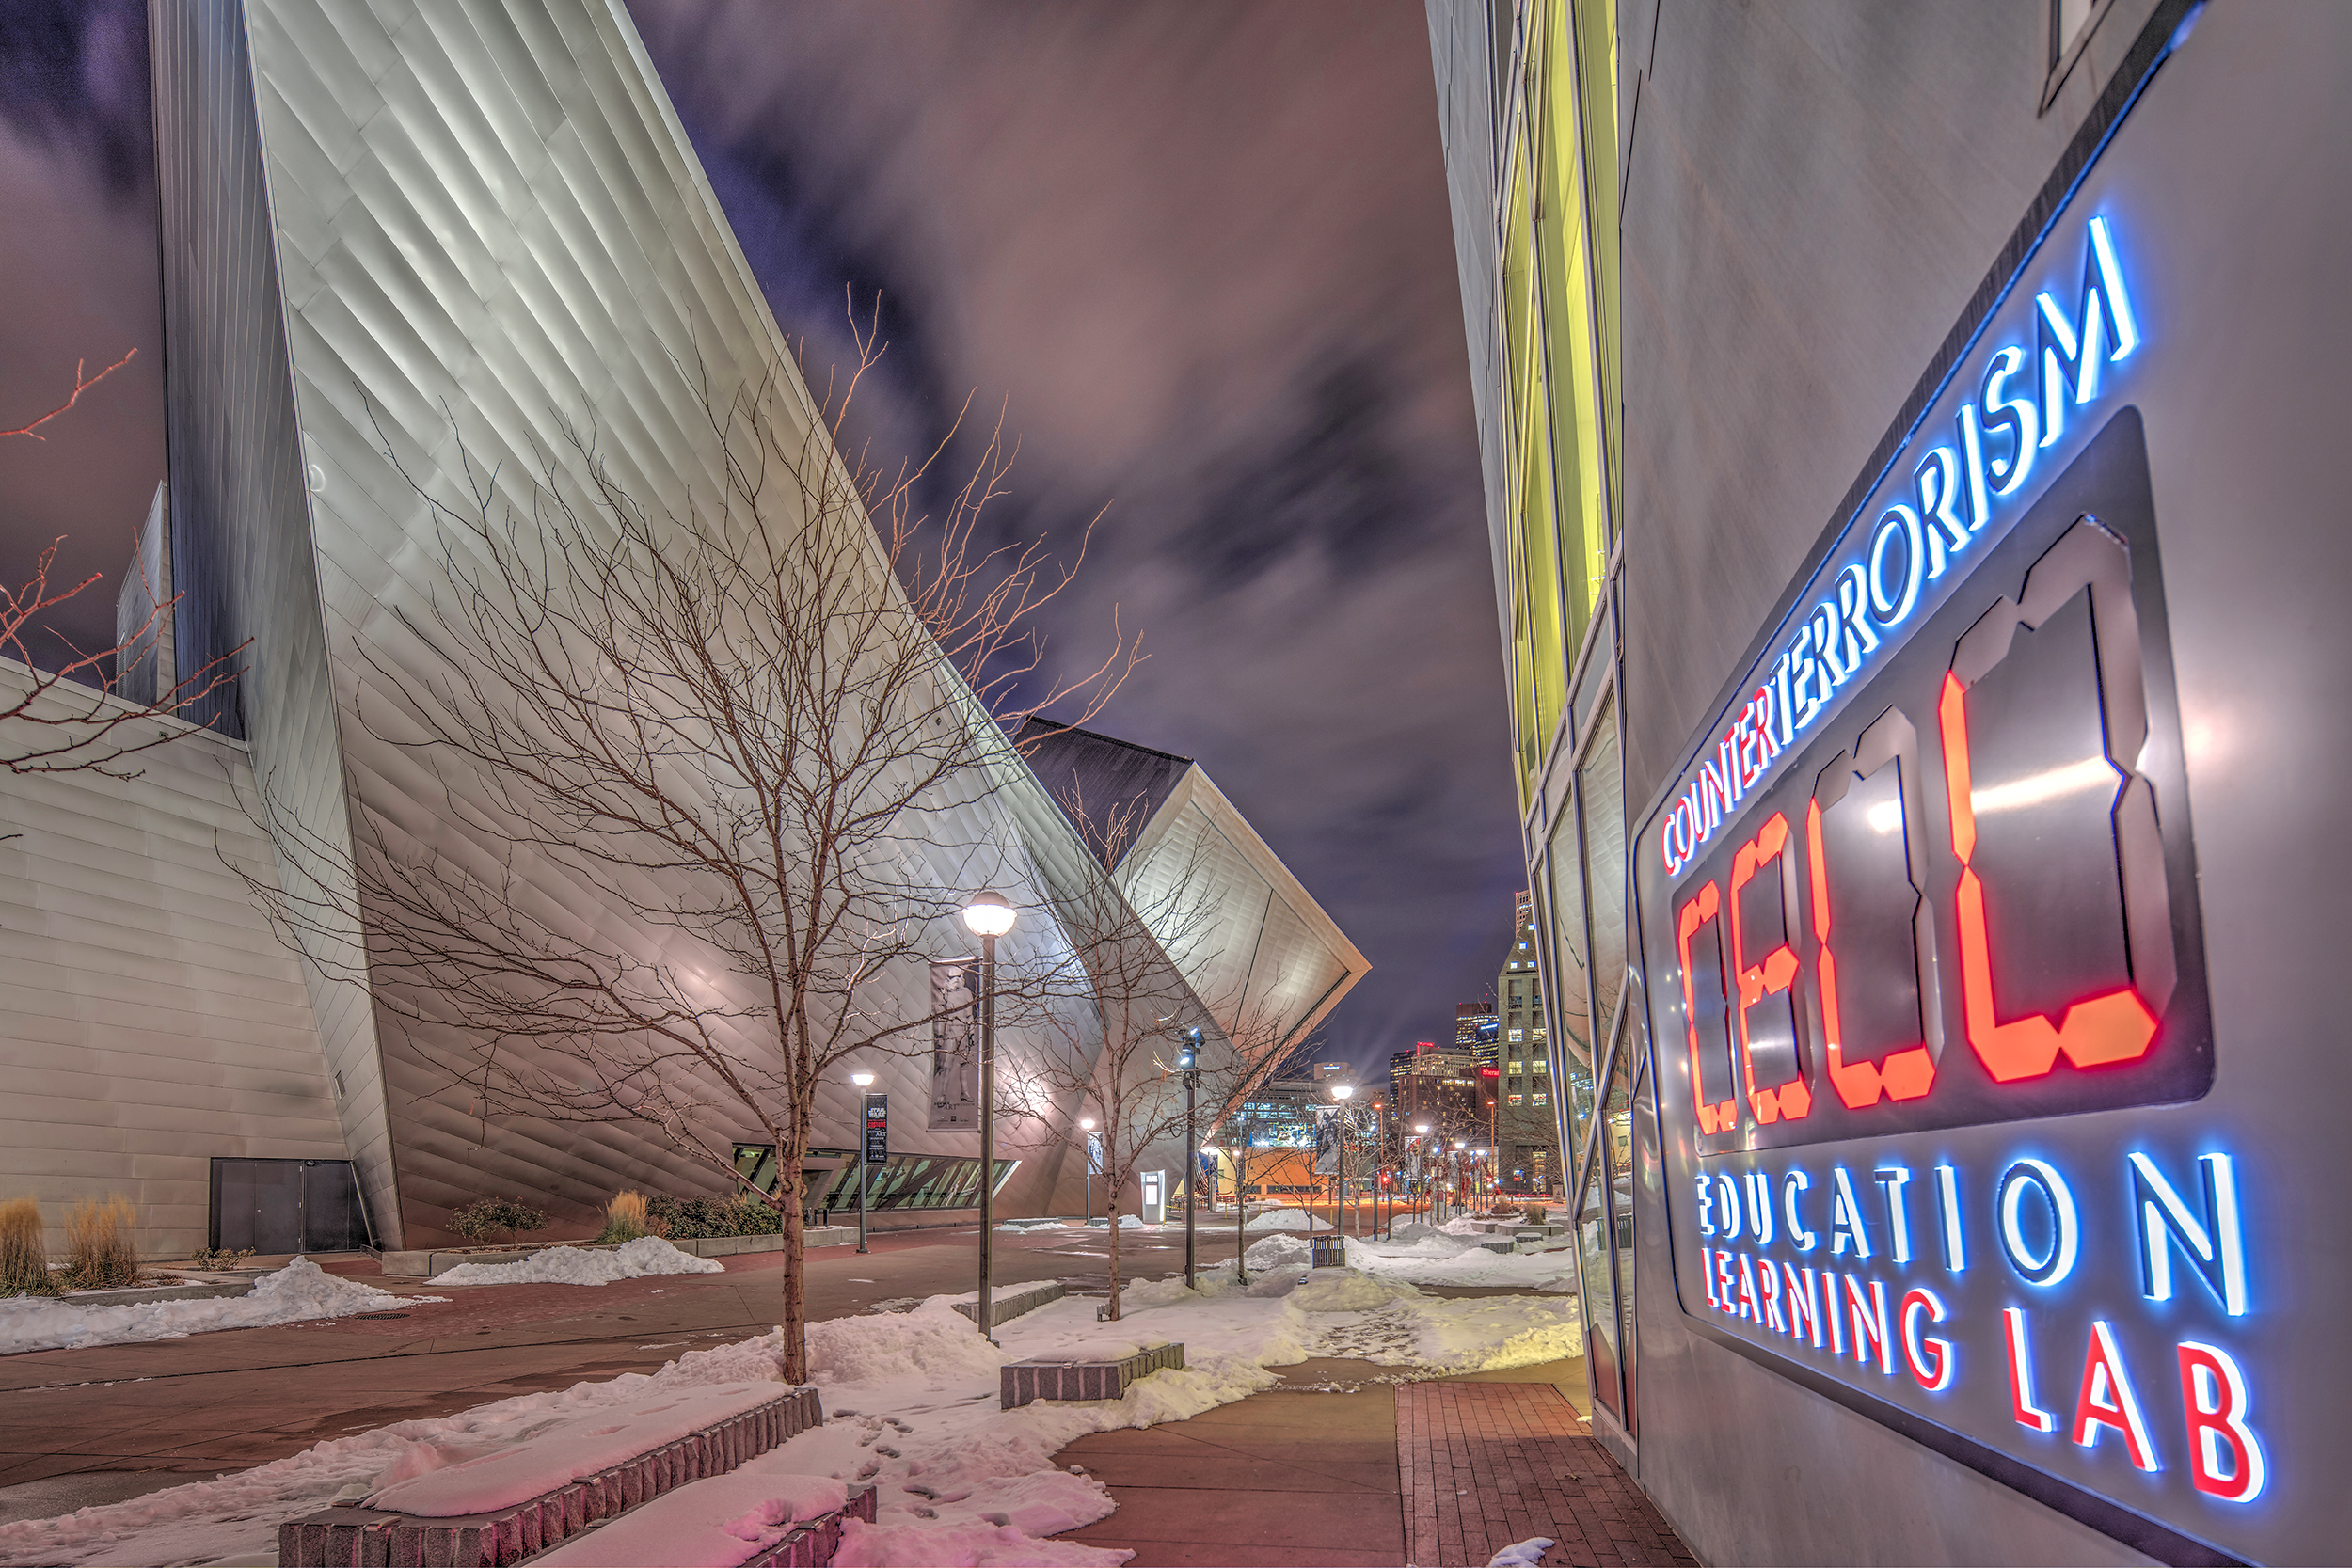 THE CELL: COUNTER TERRORISM EDUCATION LEARNING LAB/DENVER ART MUSEUM. DENVER CIVIC CENTER CULTURAL COMPLEX